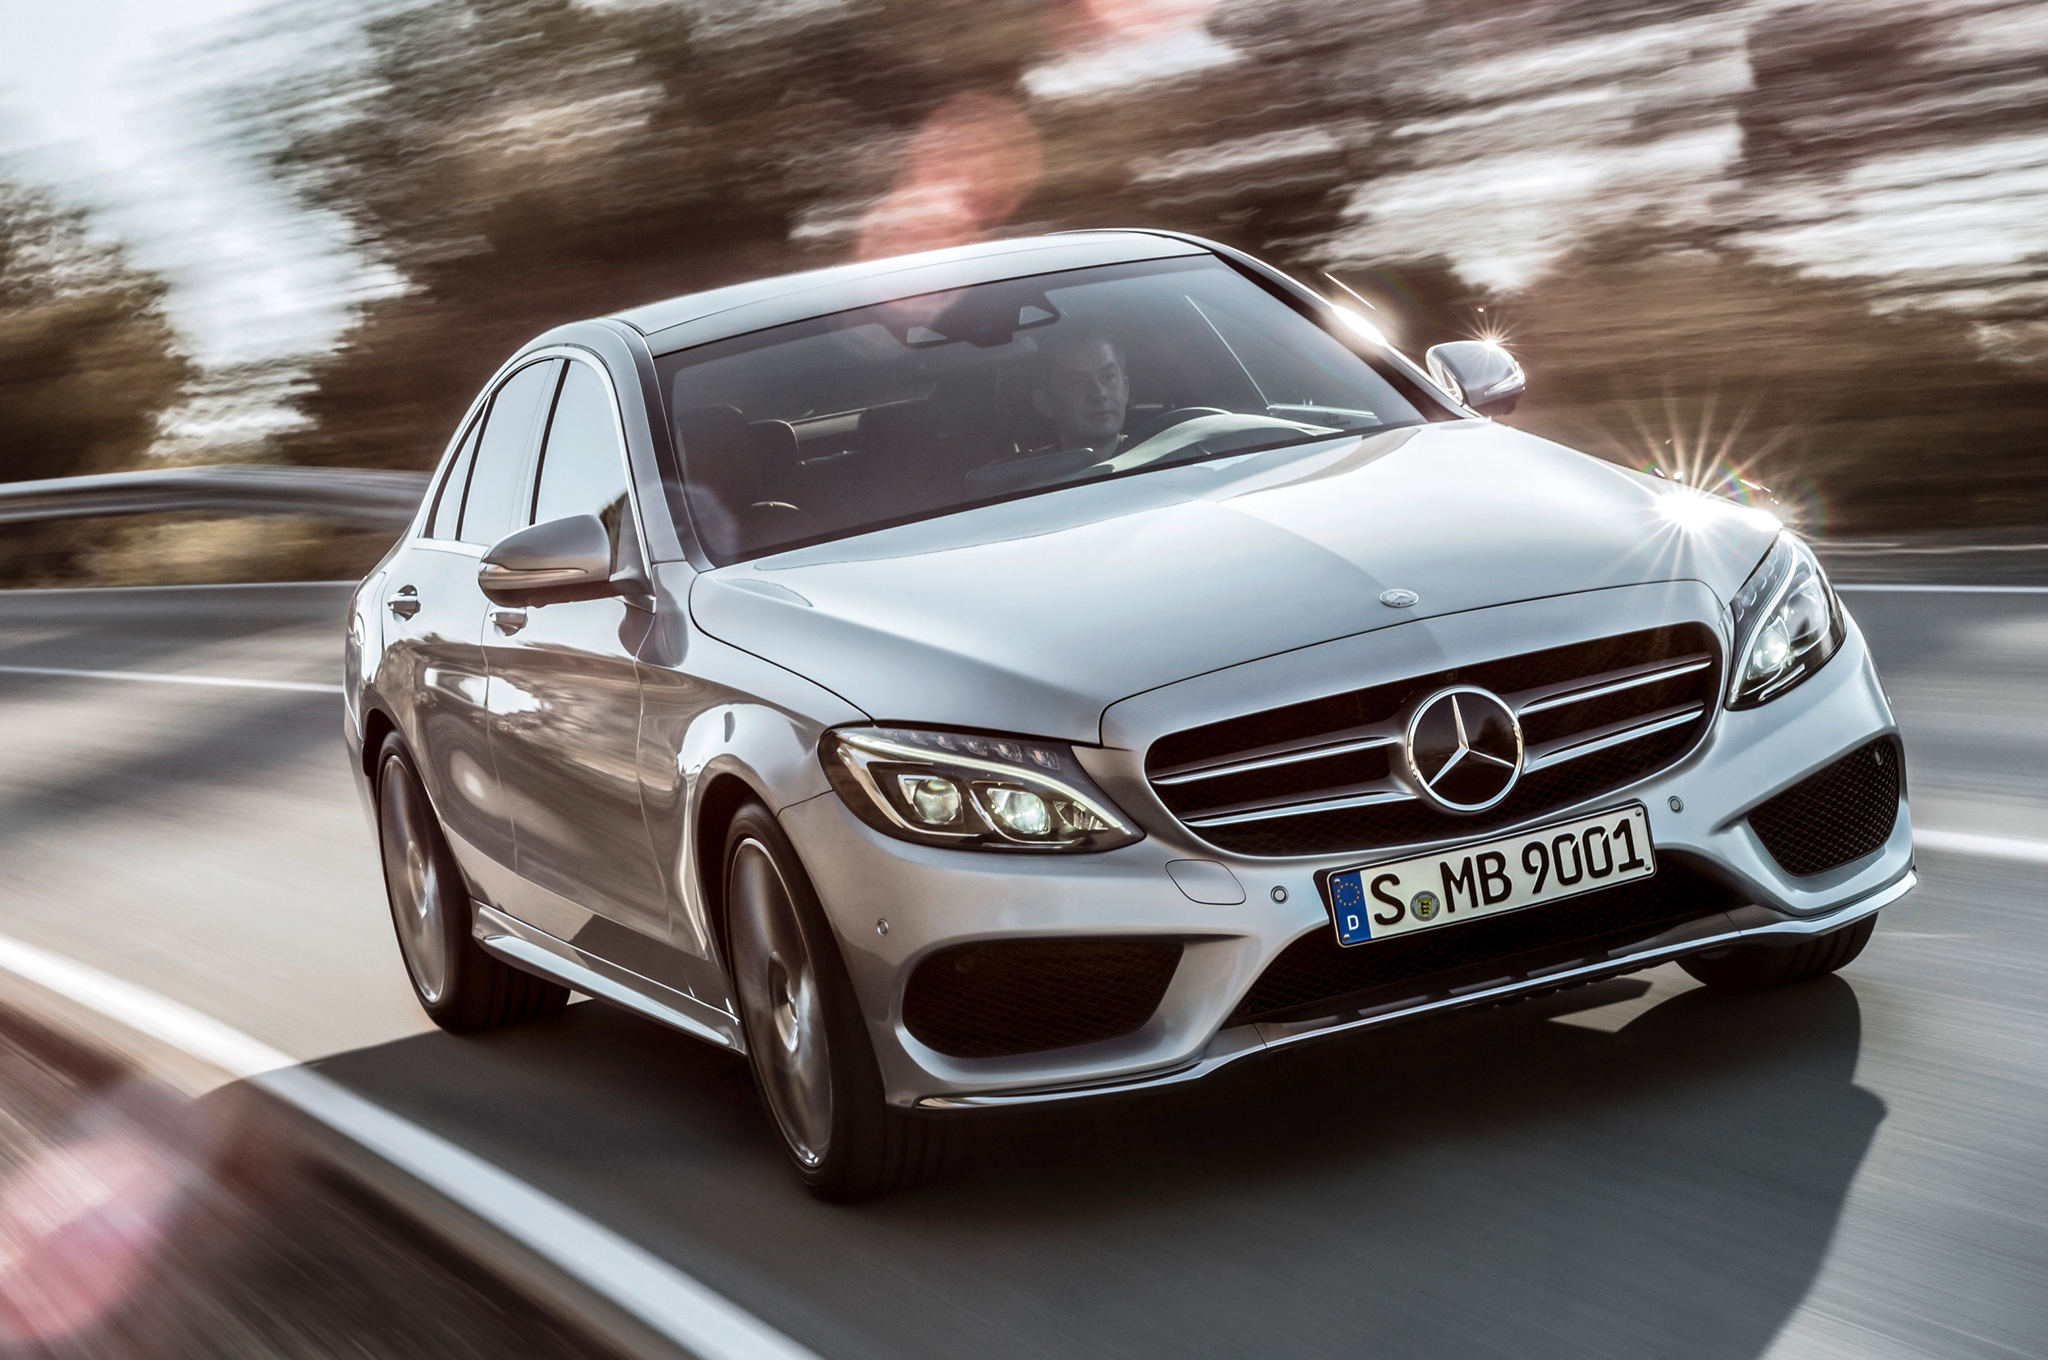 Mercedes benz c class 2015 price review release date for Mercedes benz 2014 c class price